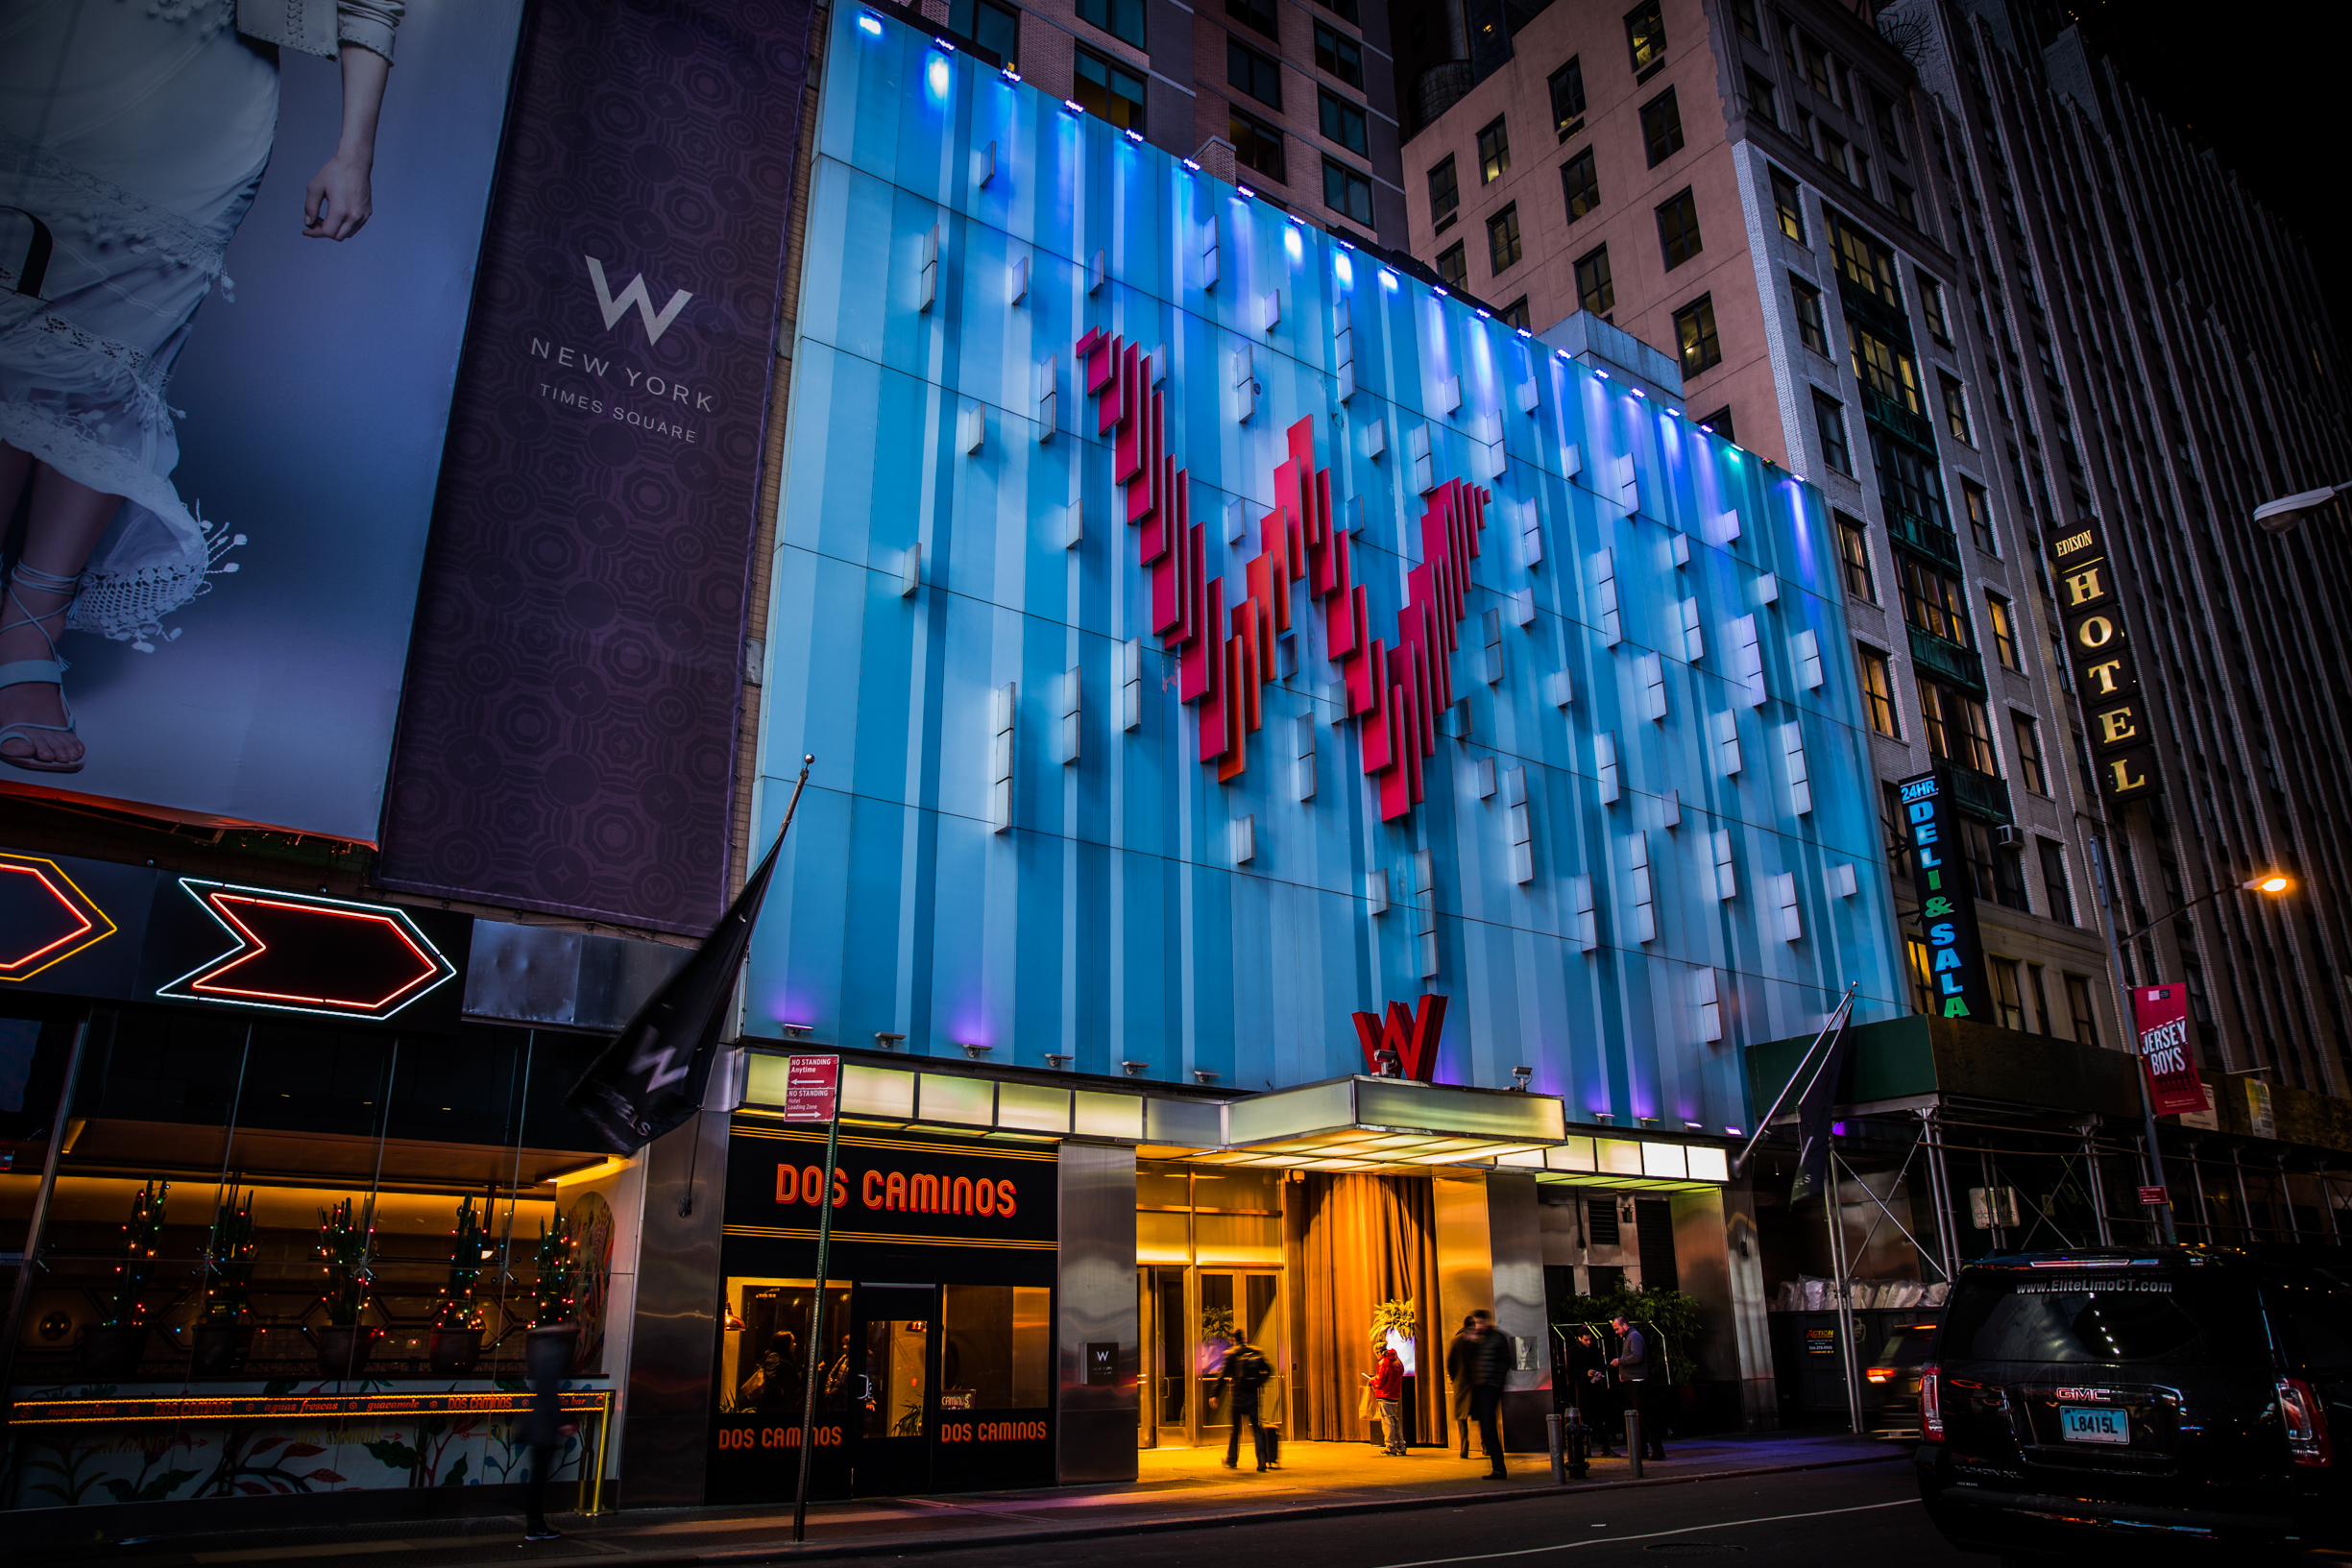 w hotel in Time Square with lifestyle blogger mademoiselle jules